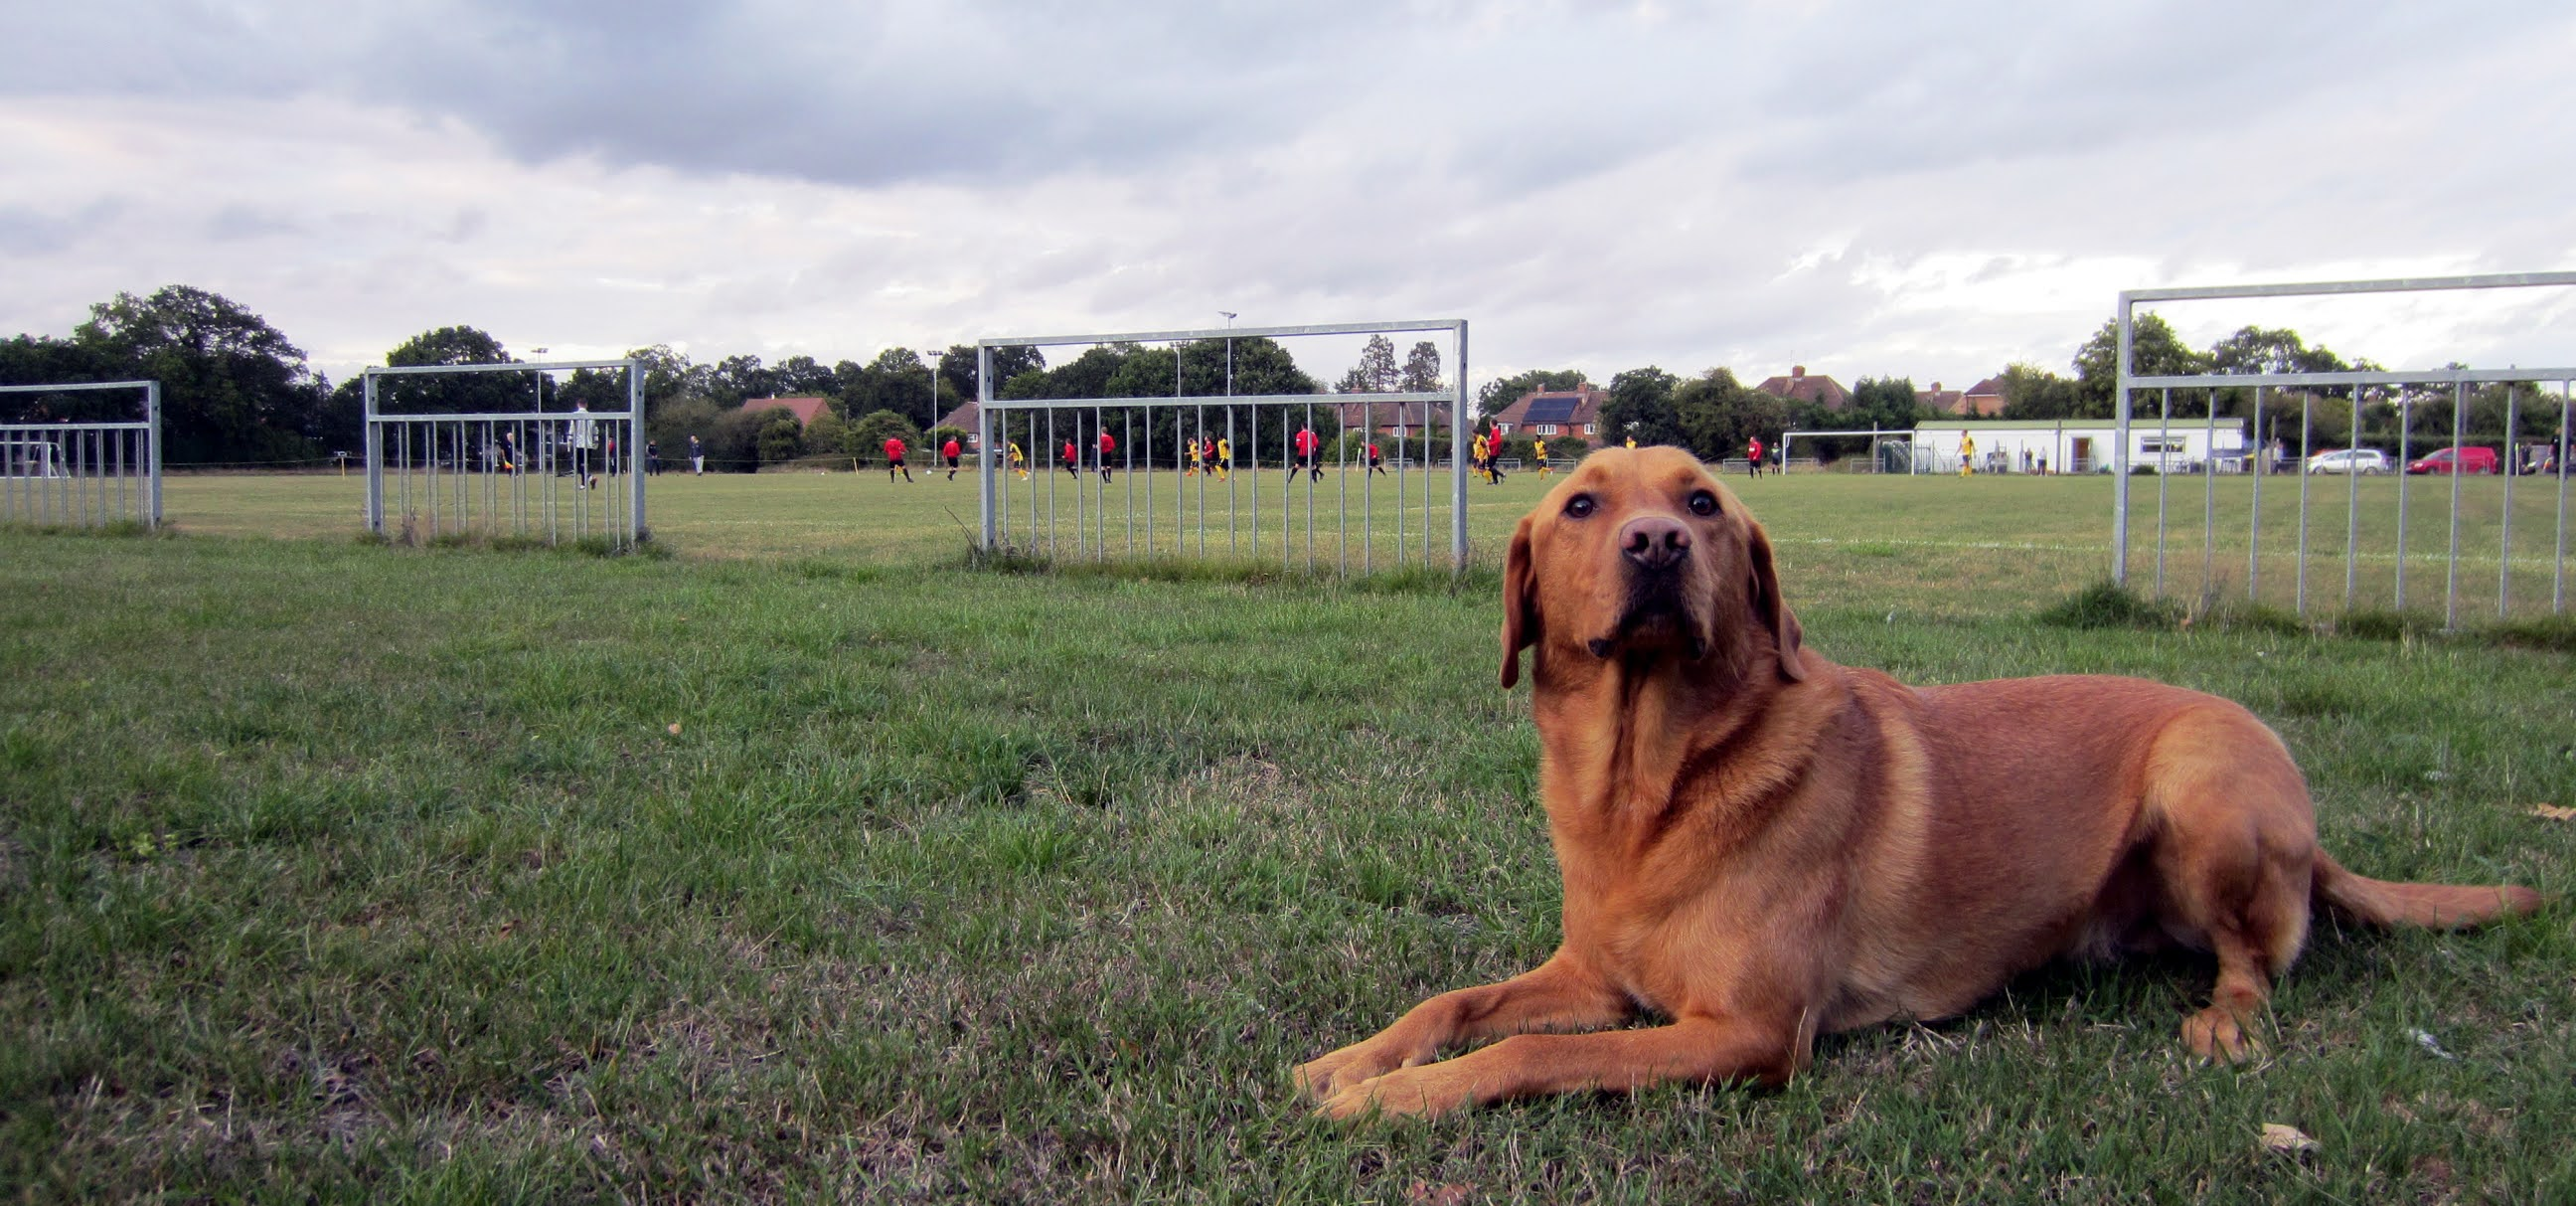 A dog watching the game between Mortimer FC and Cookham Dean FC